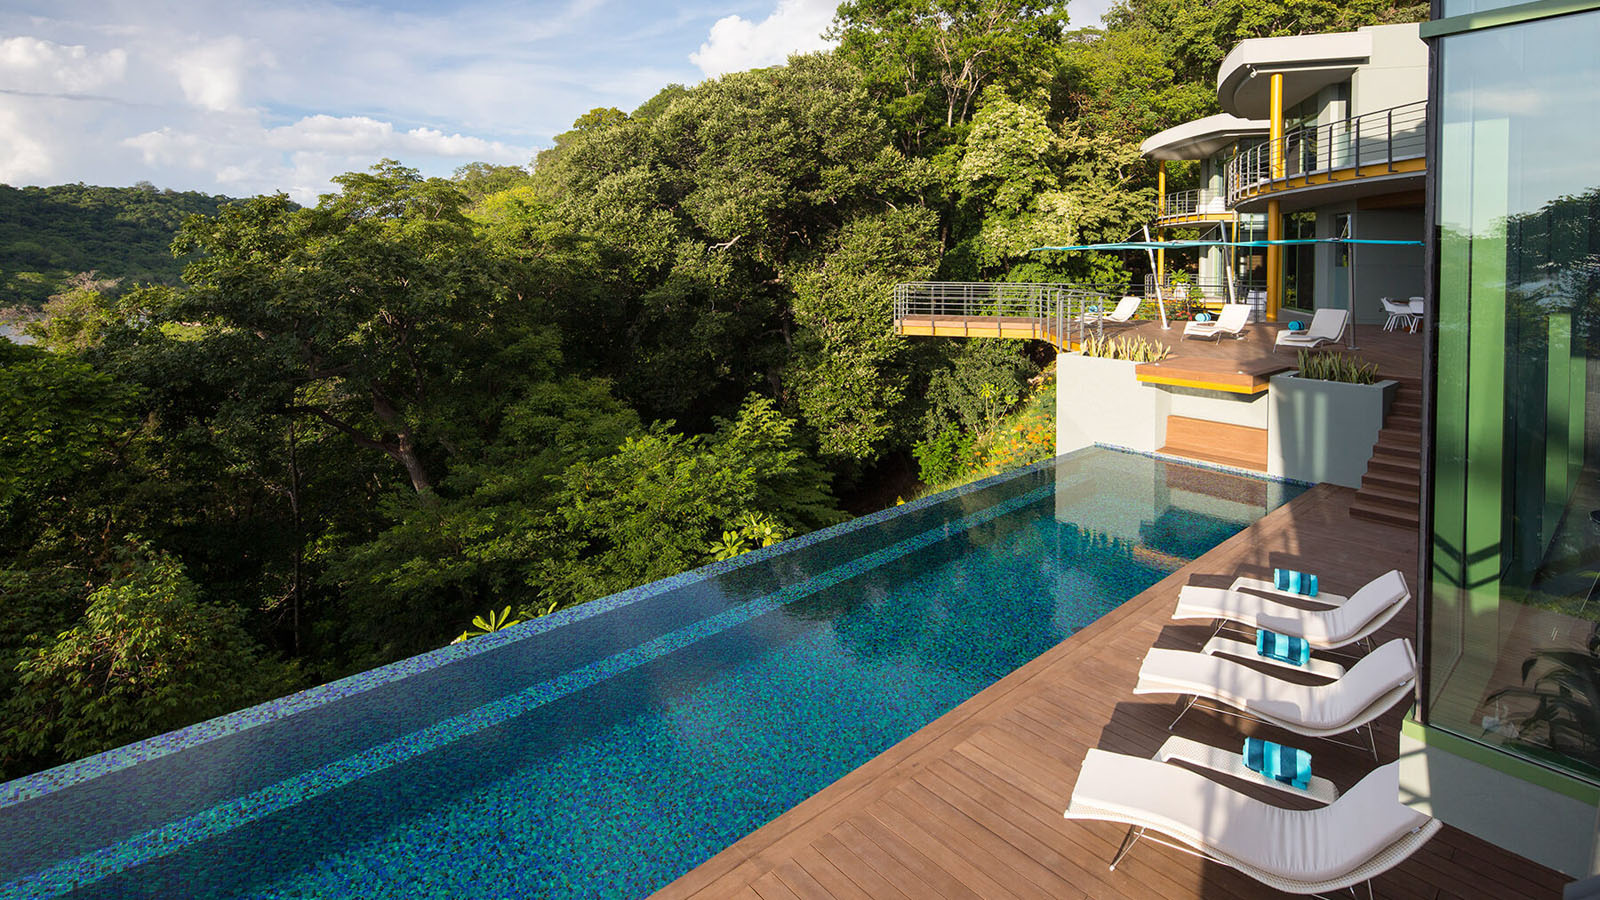 Tropical modern luxury home in the jungle idesignarch for Luxury home designers architects